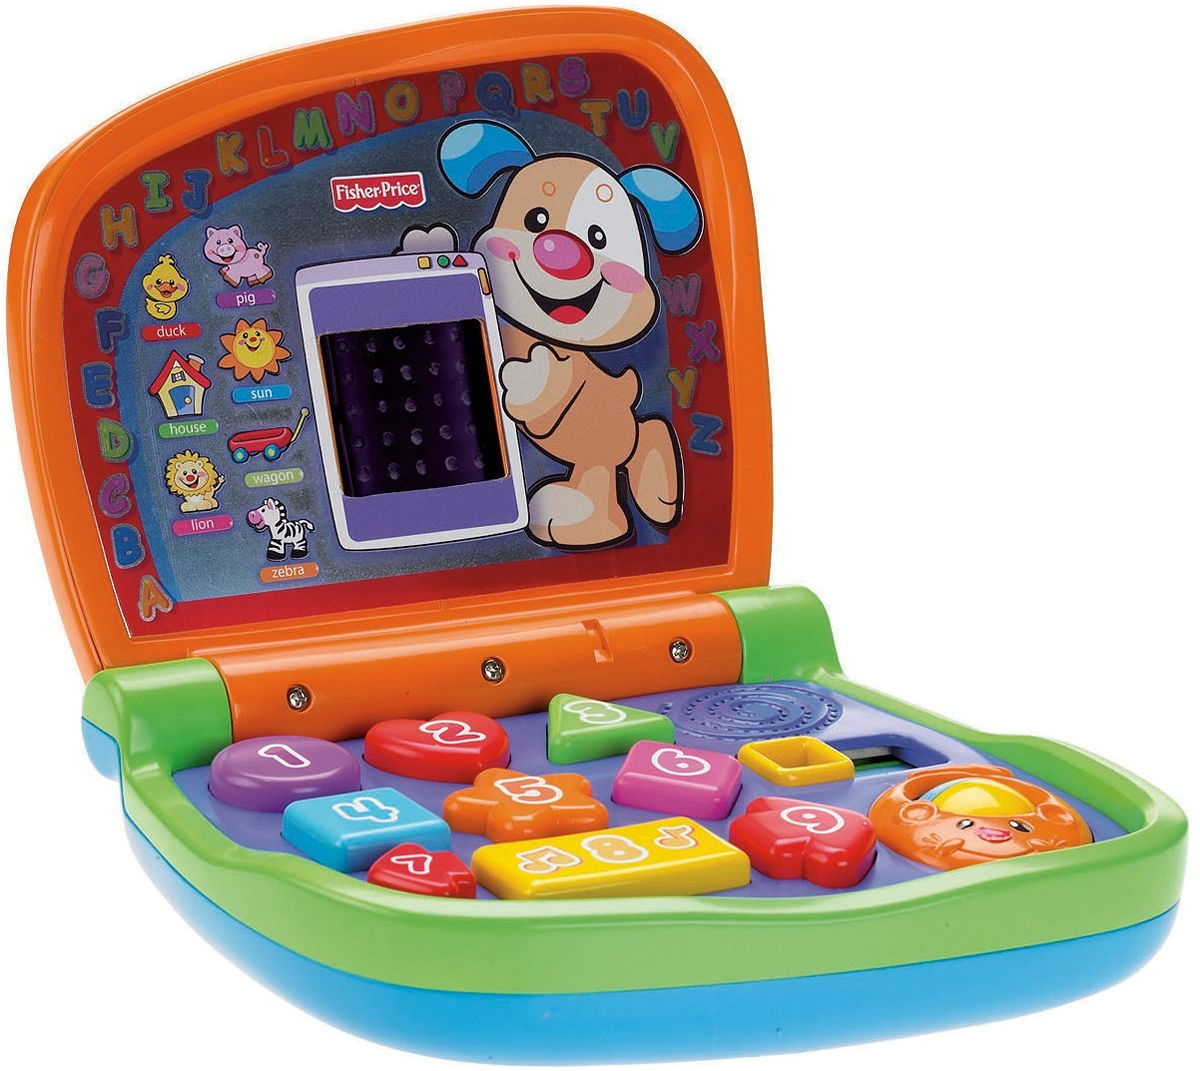 Fisher-Price Laugh & Learn Click & Learn Laptop - amazon.com